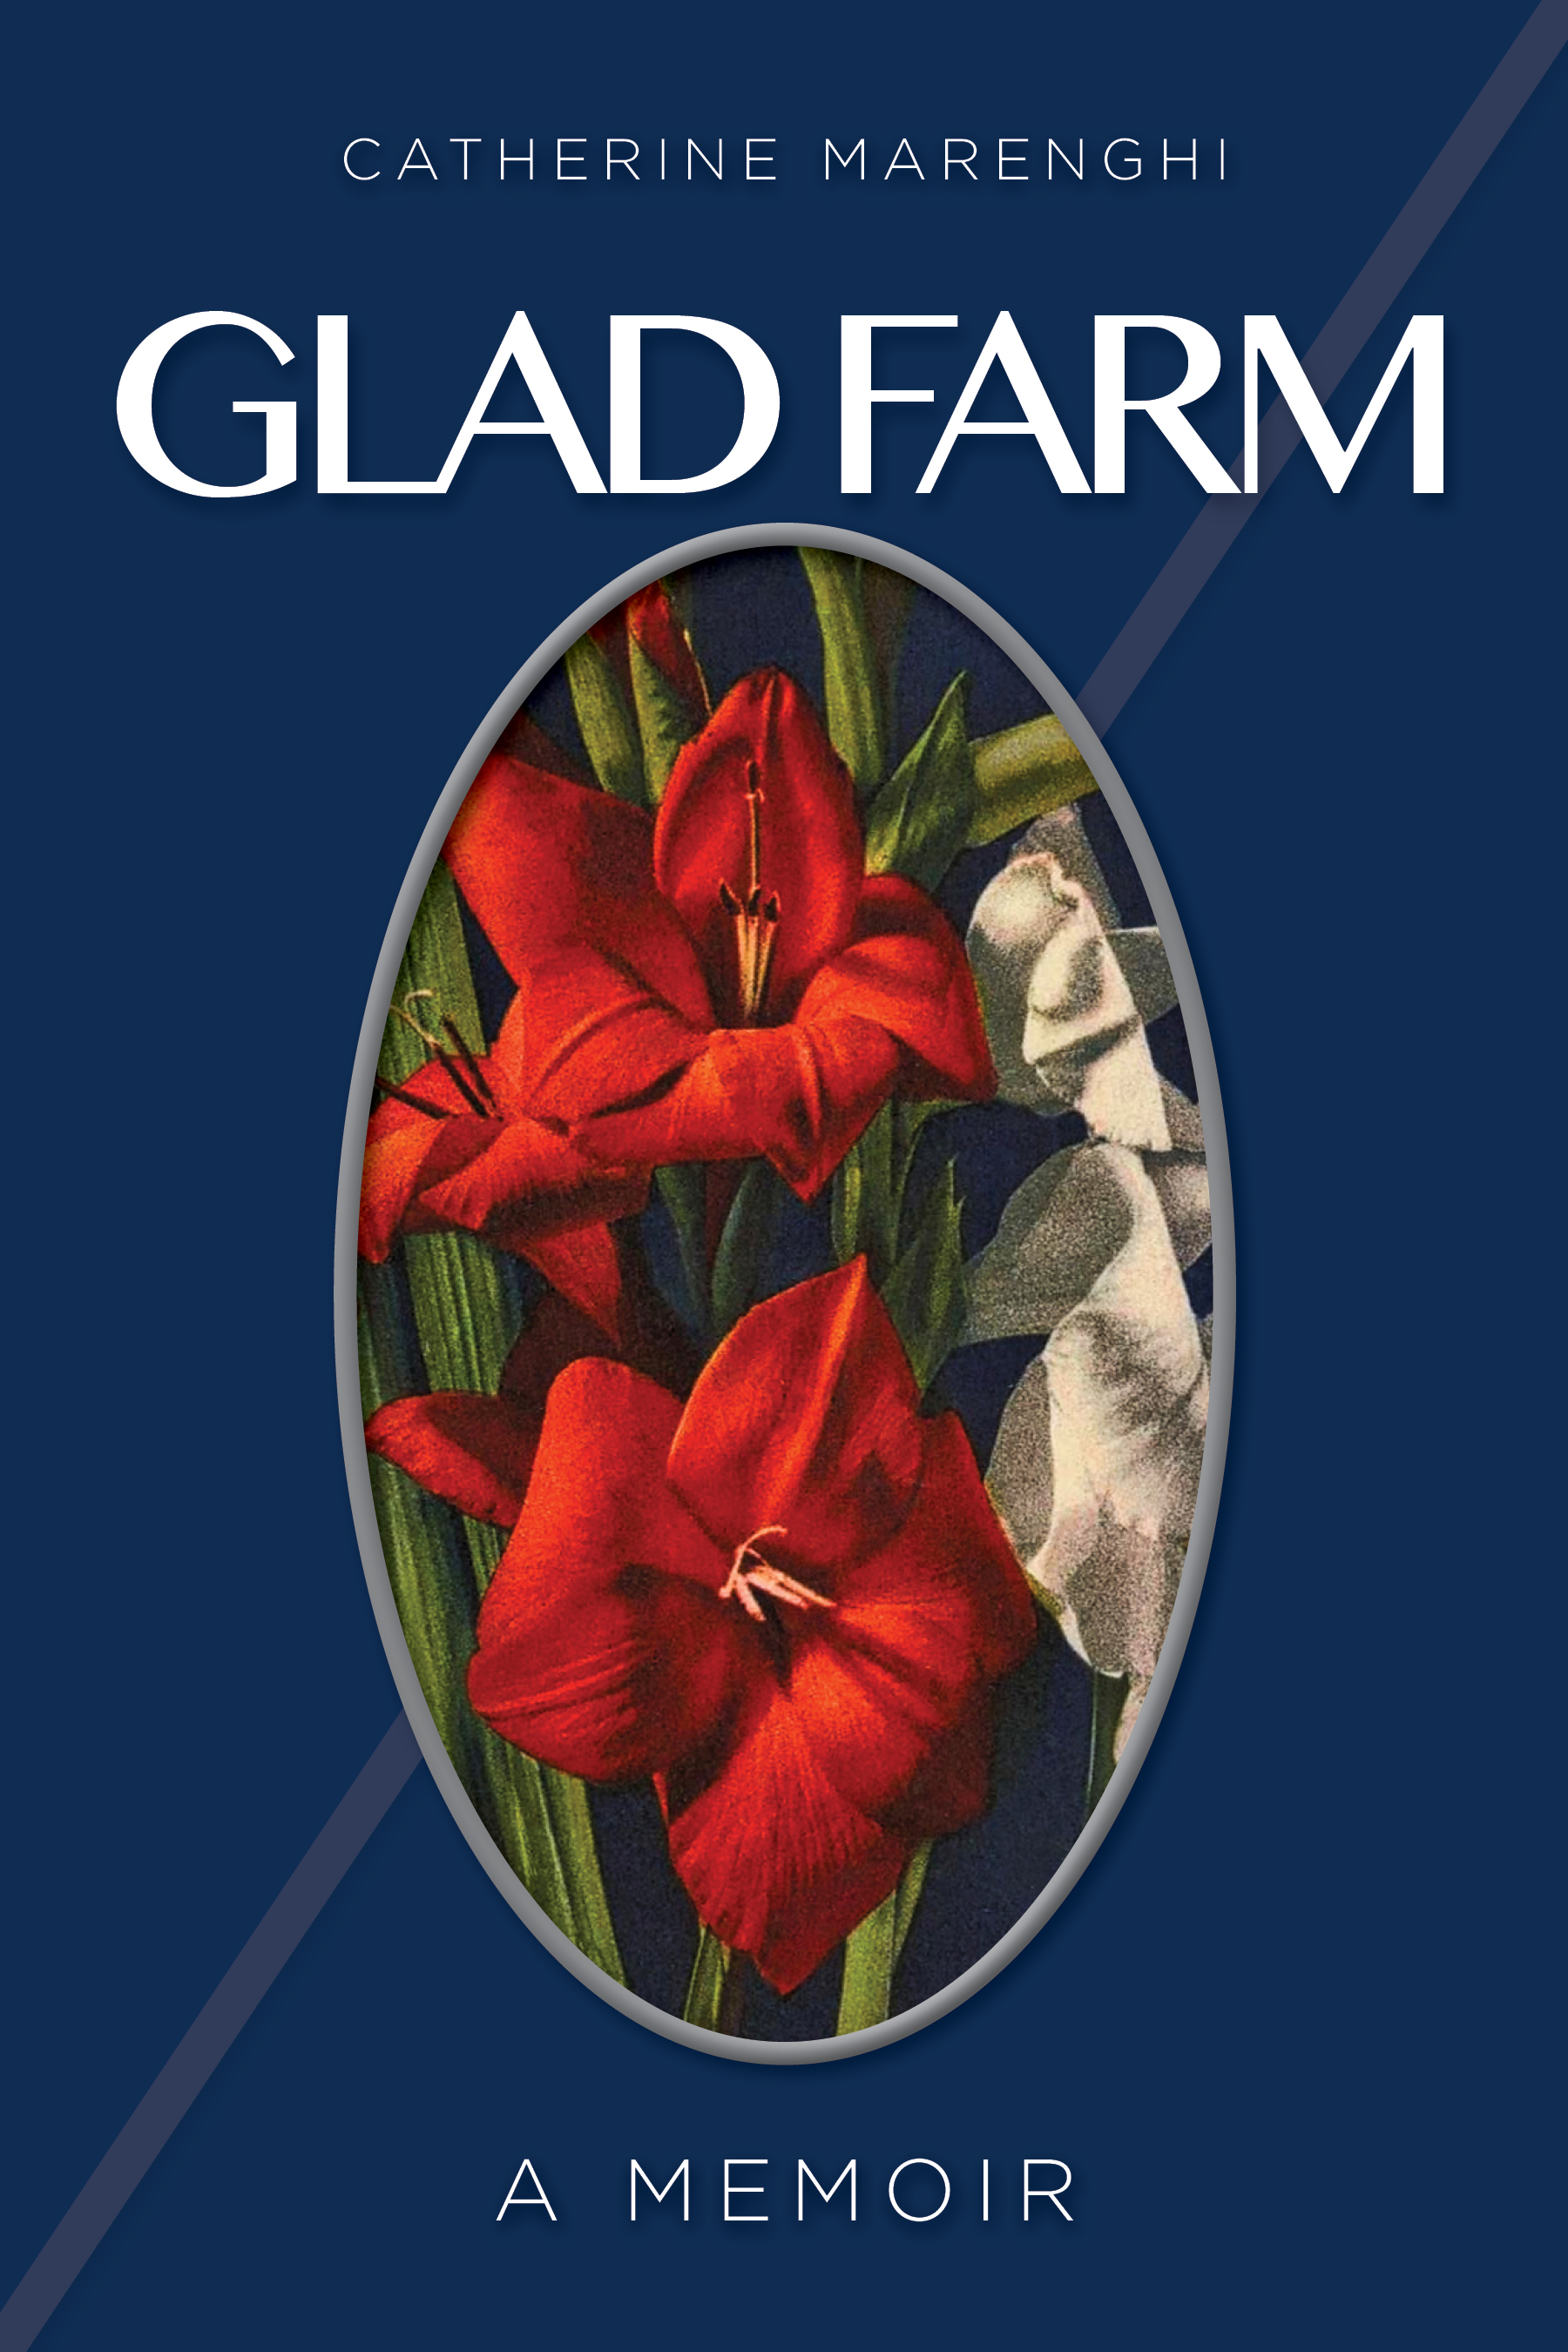 GLAD FARM: revised cover concept #3